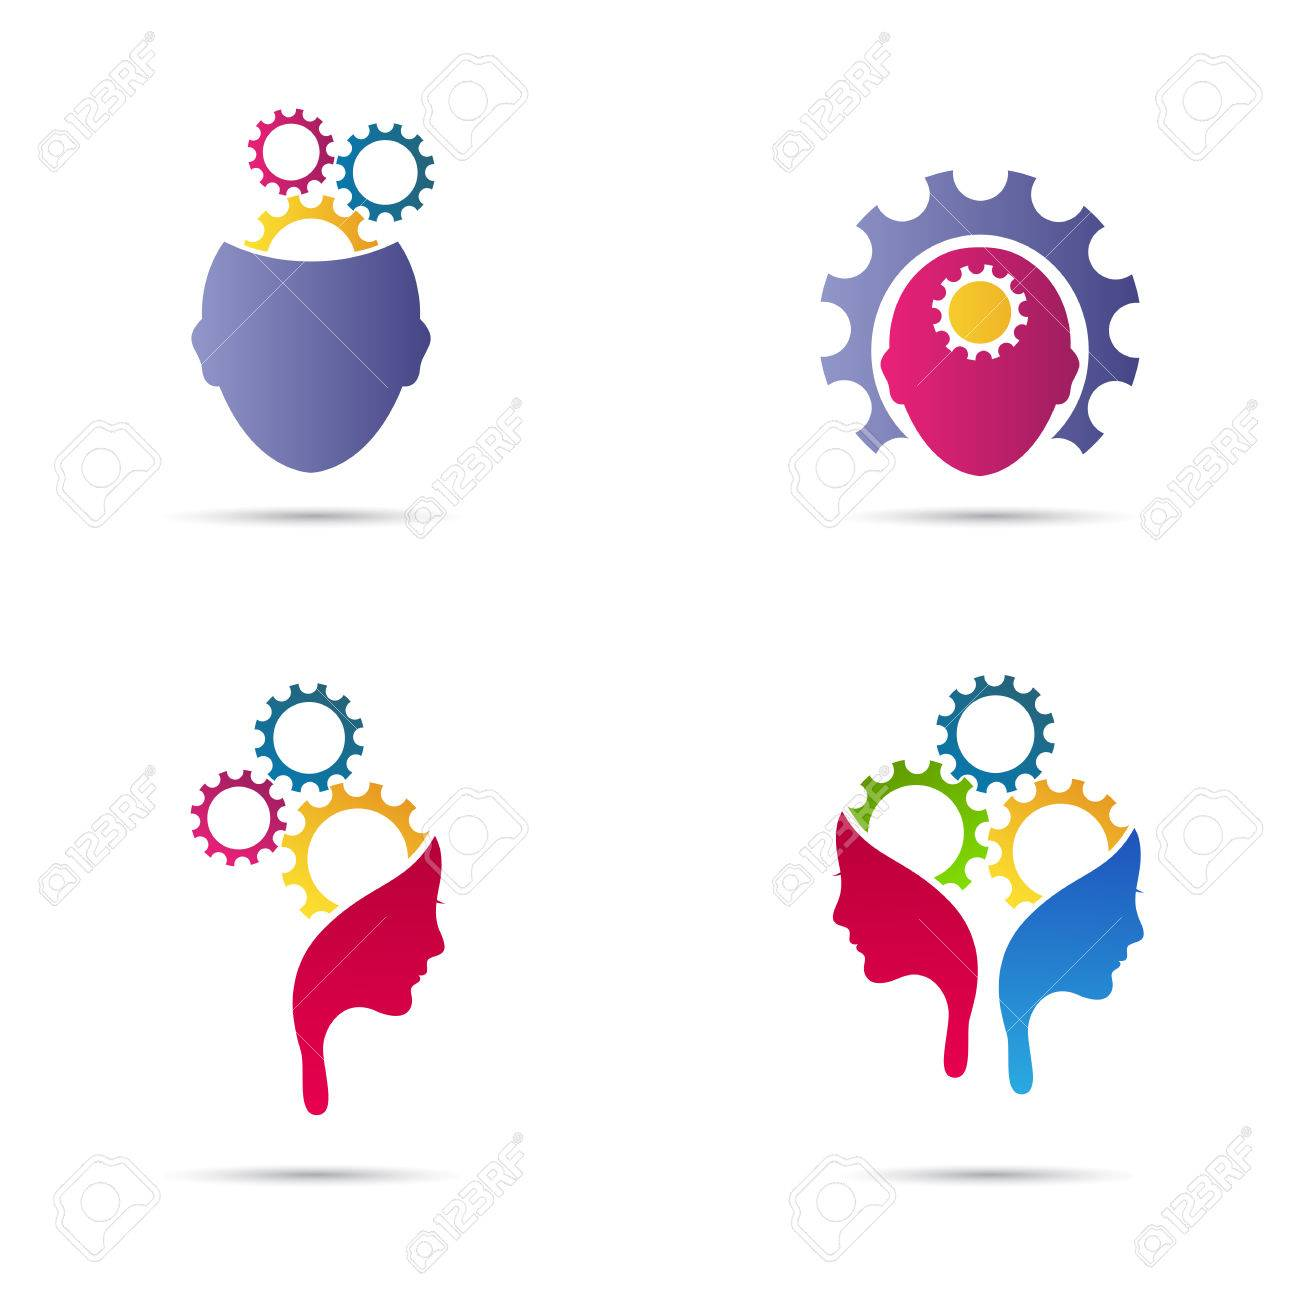 Mind Gear Vector Design Represents Creative Thinking And Different Business Ideas Concept Stock Vector